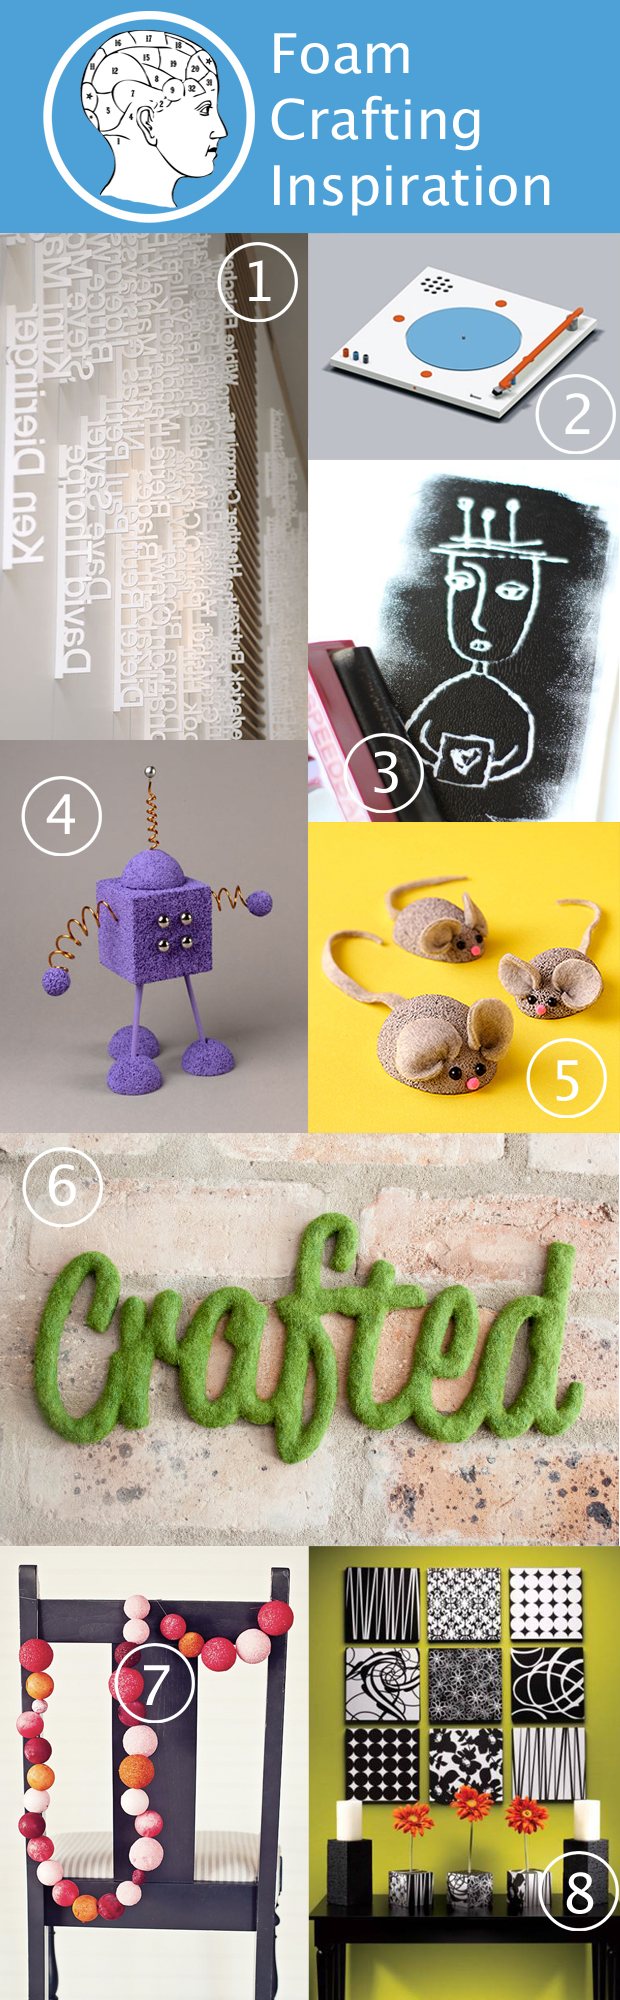 Foam Crafting Inspiration at HandsOccupied.com